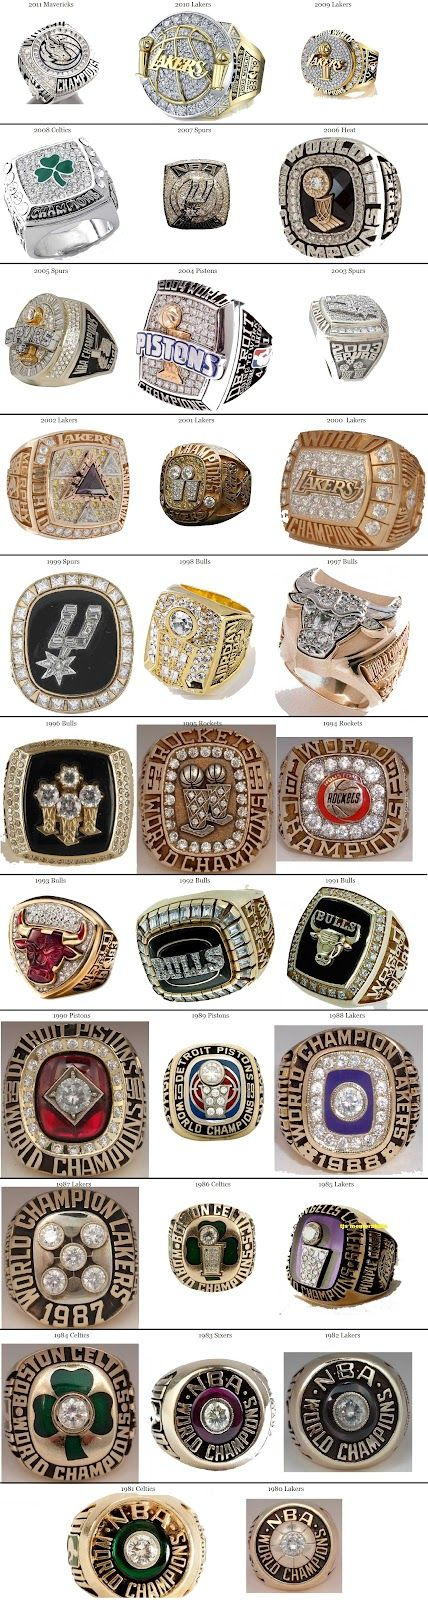 NBA championship rings from 1980 to 2011